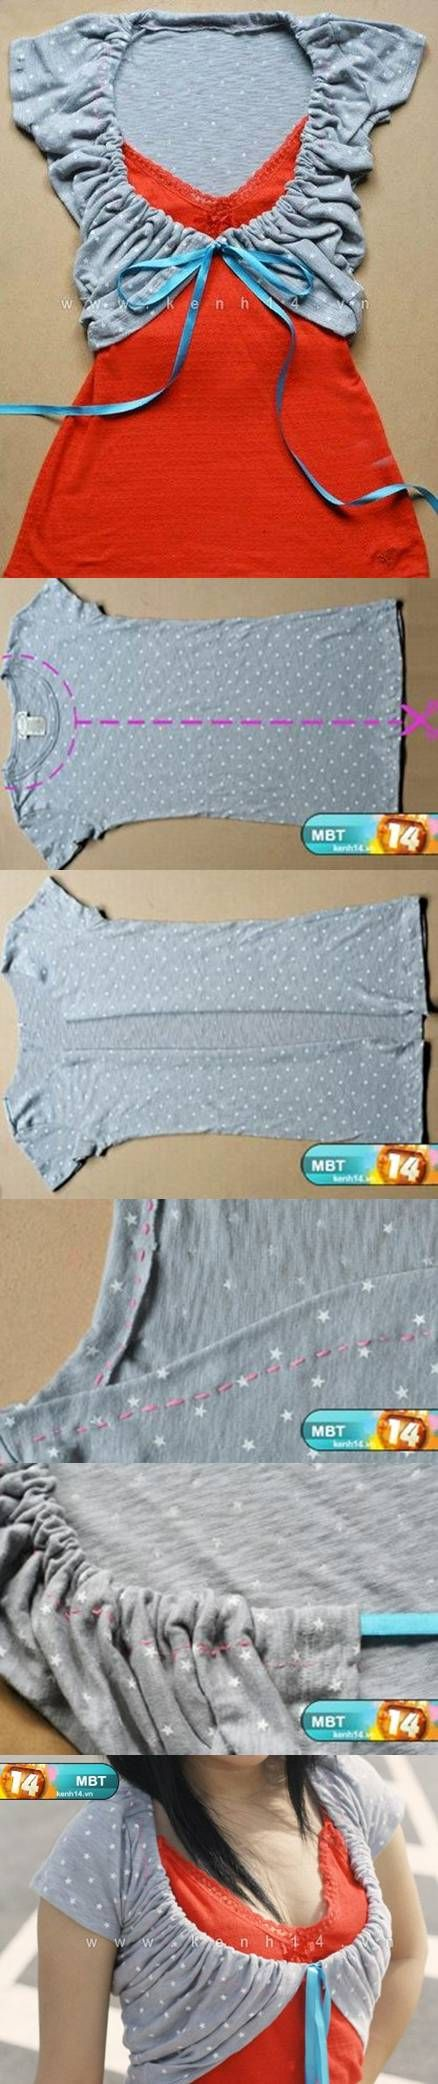 Shirt DIY Decoración DIY Proyectos | UsefulDIY.com